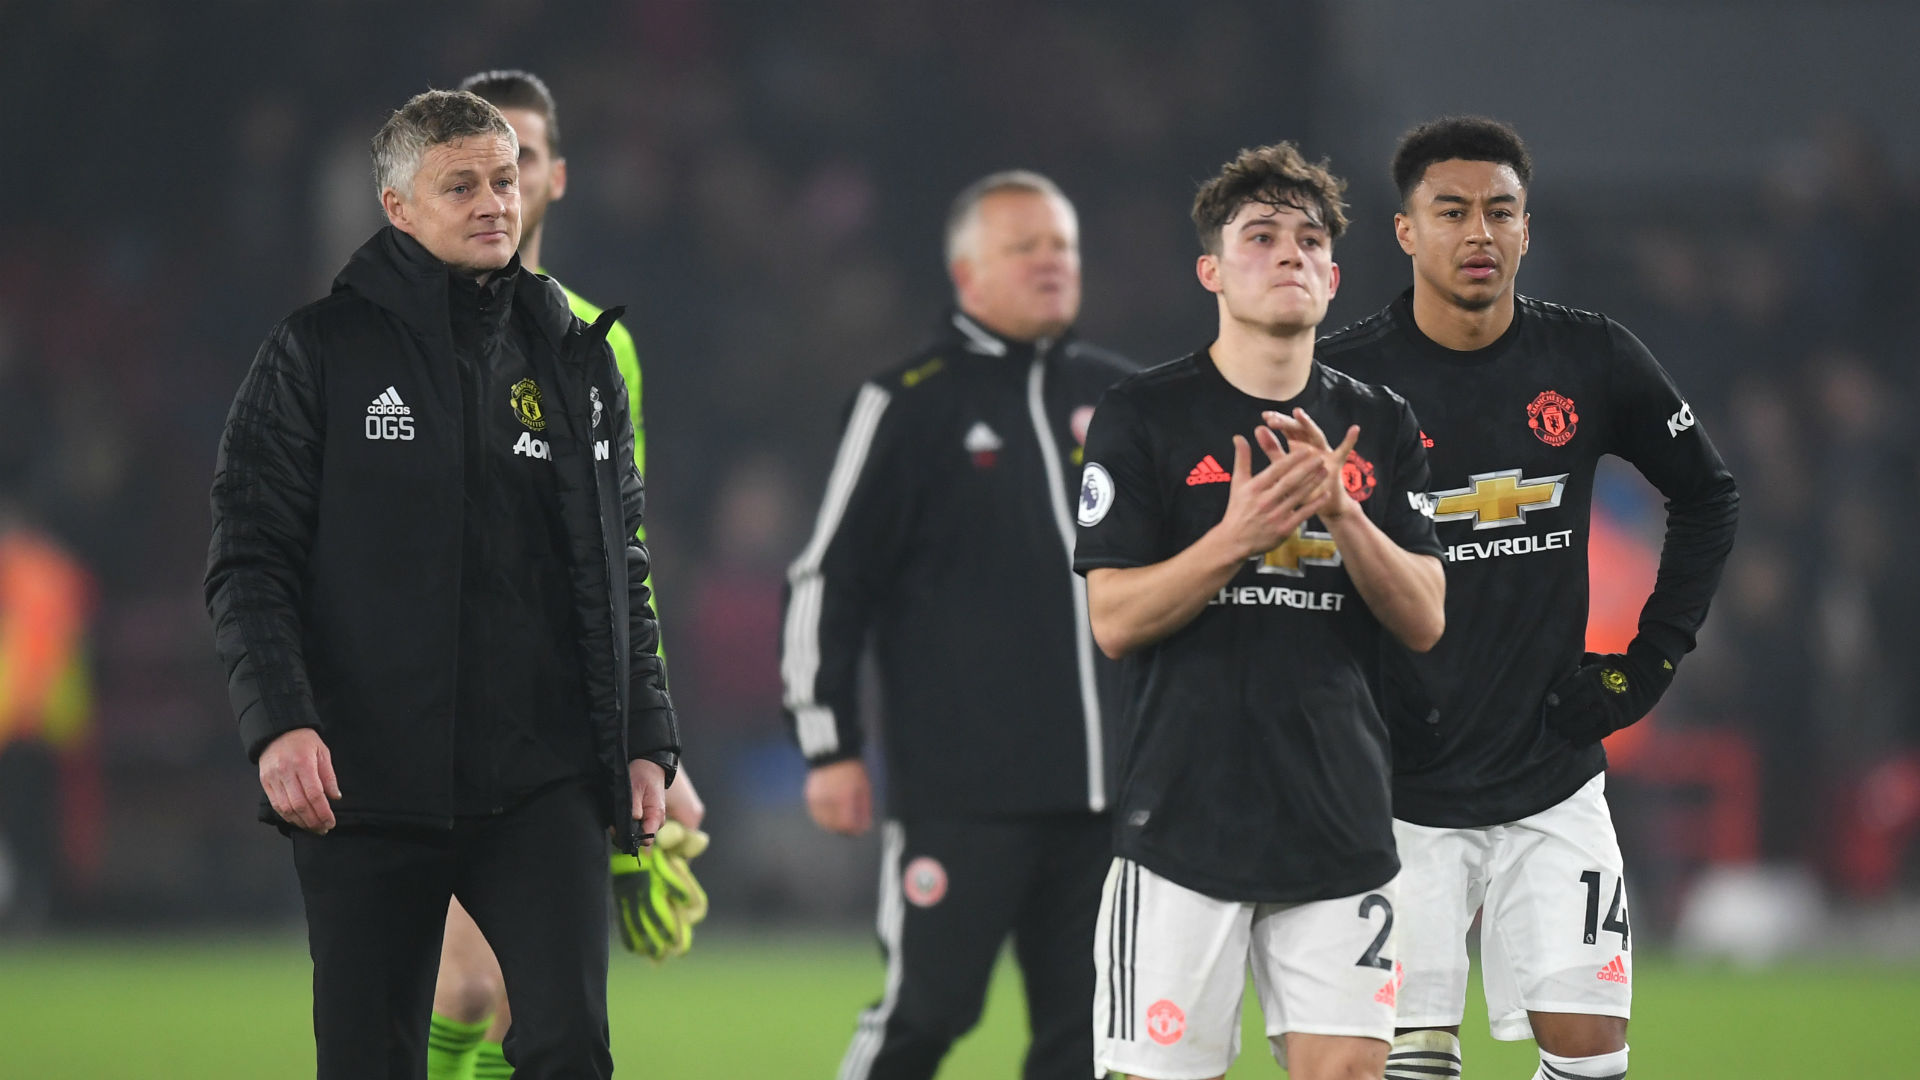 Sheffield United wanted it more than us, says Manchester United boss Solskjaer